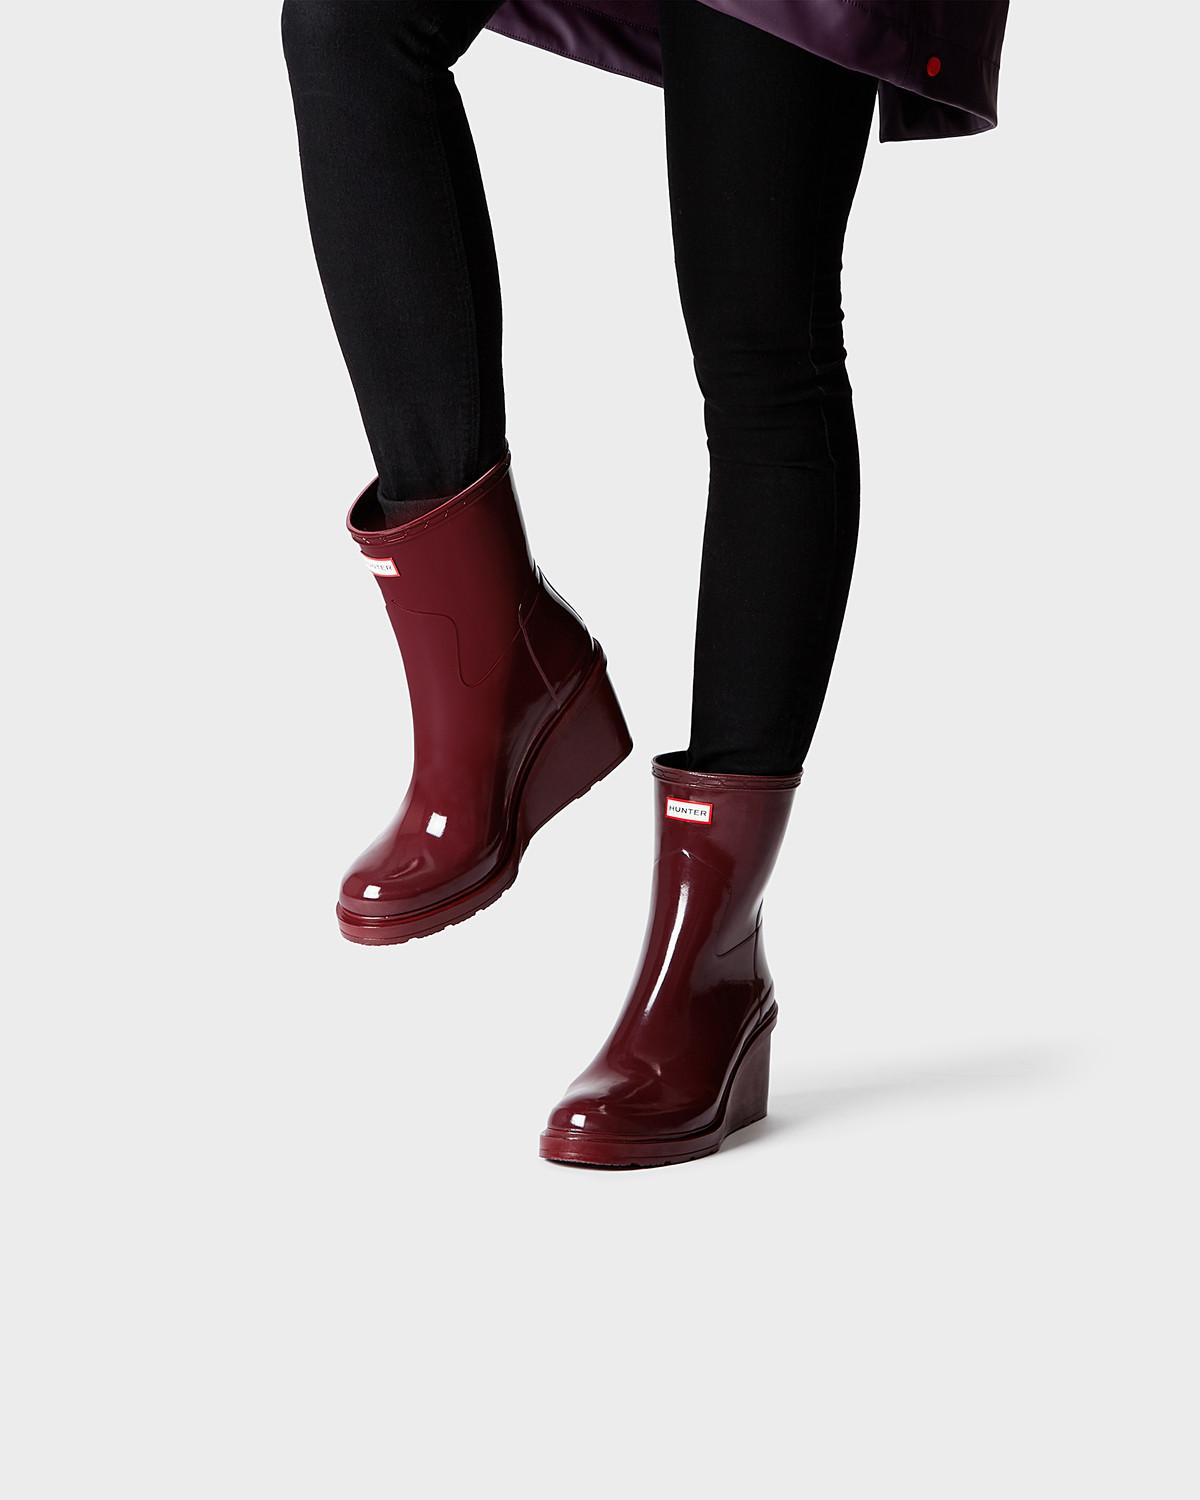 Lyst Hunter Women S Original Refined Wedge Sole Boots In Red